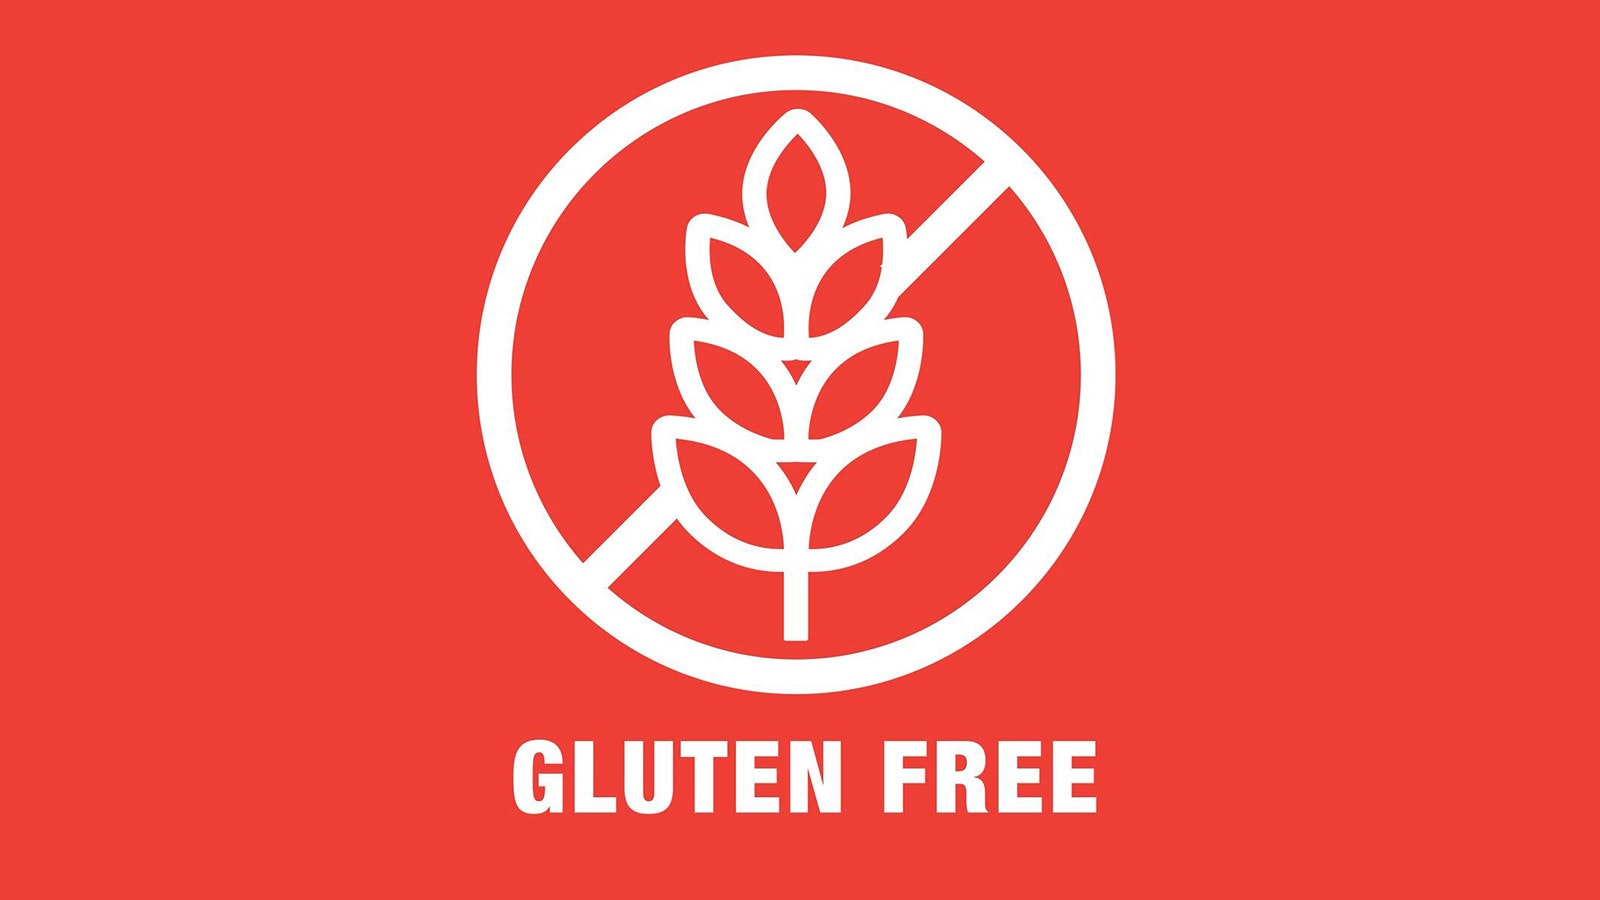 Gluten Free to the Glory of God